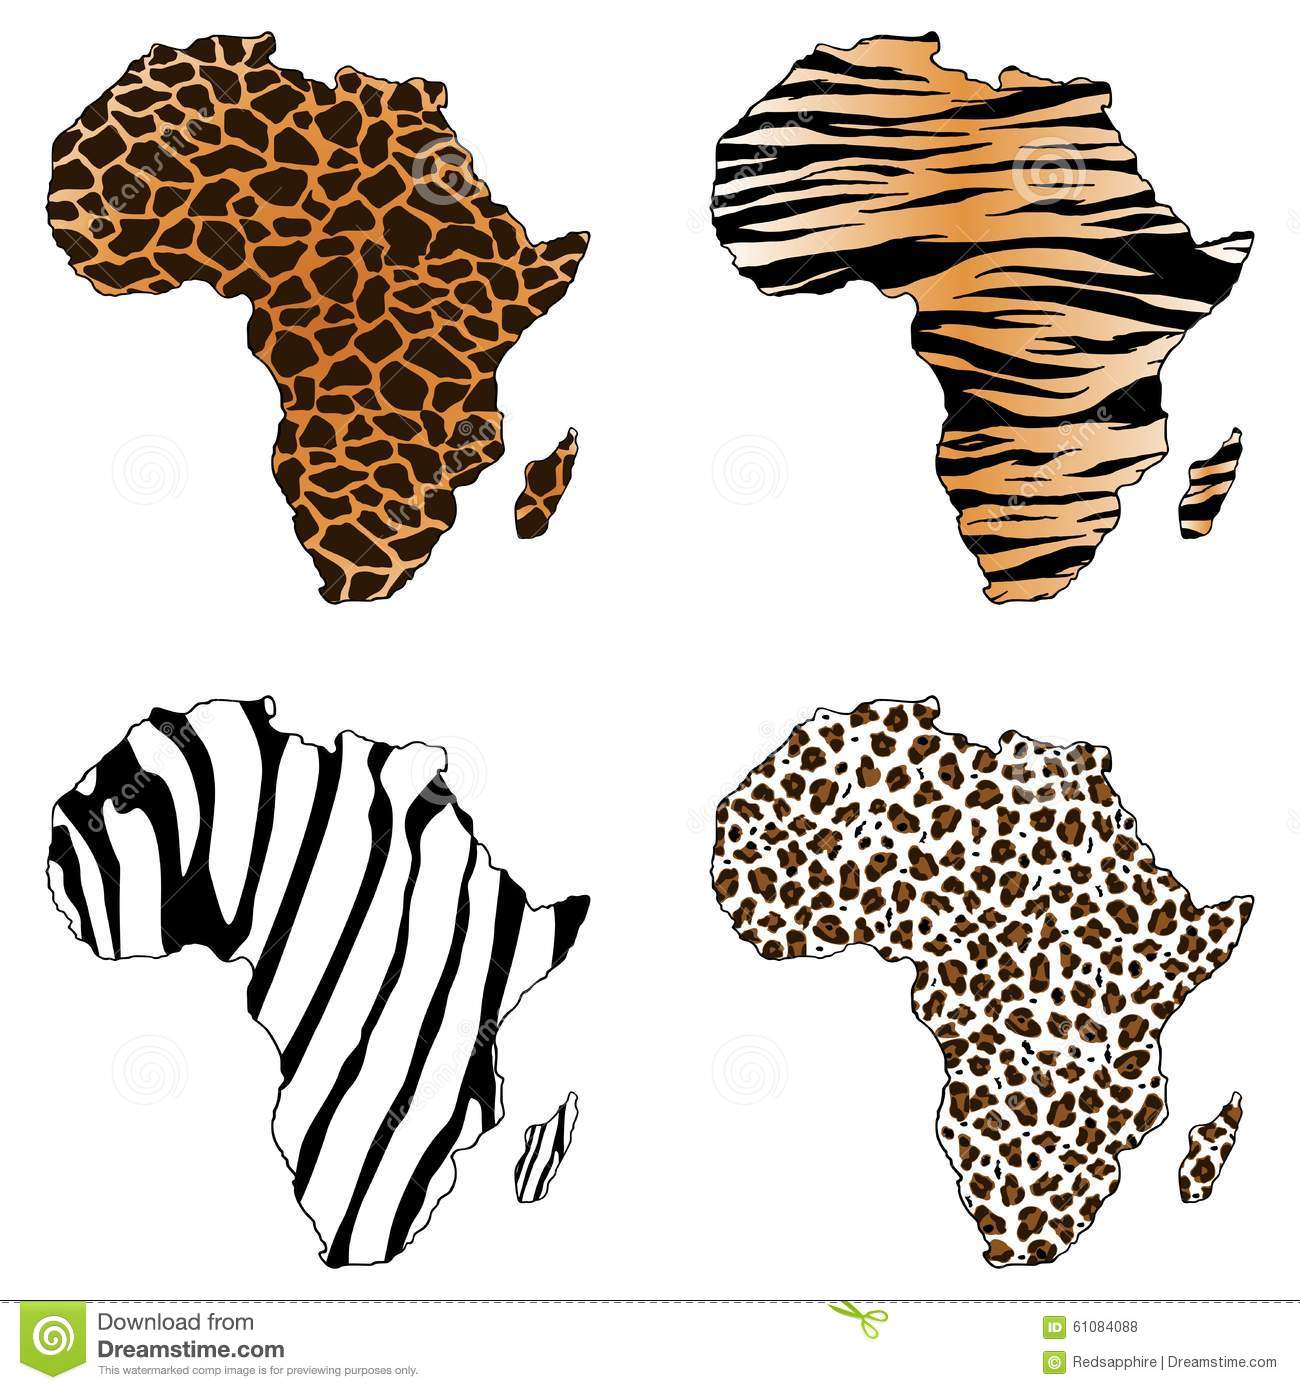 Africa, Map Of Africa With Animal Prints Stock Vector - Image ...